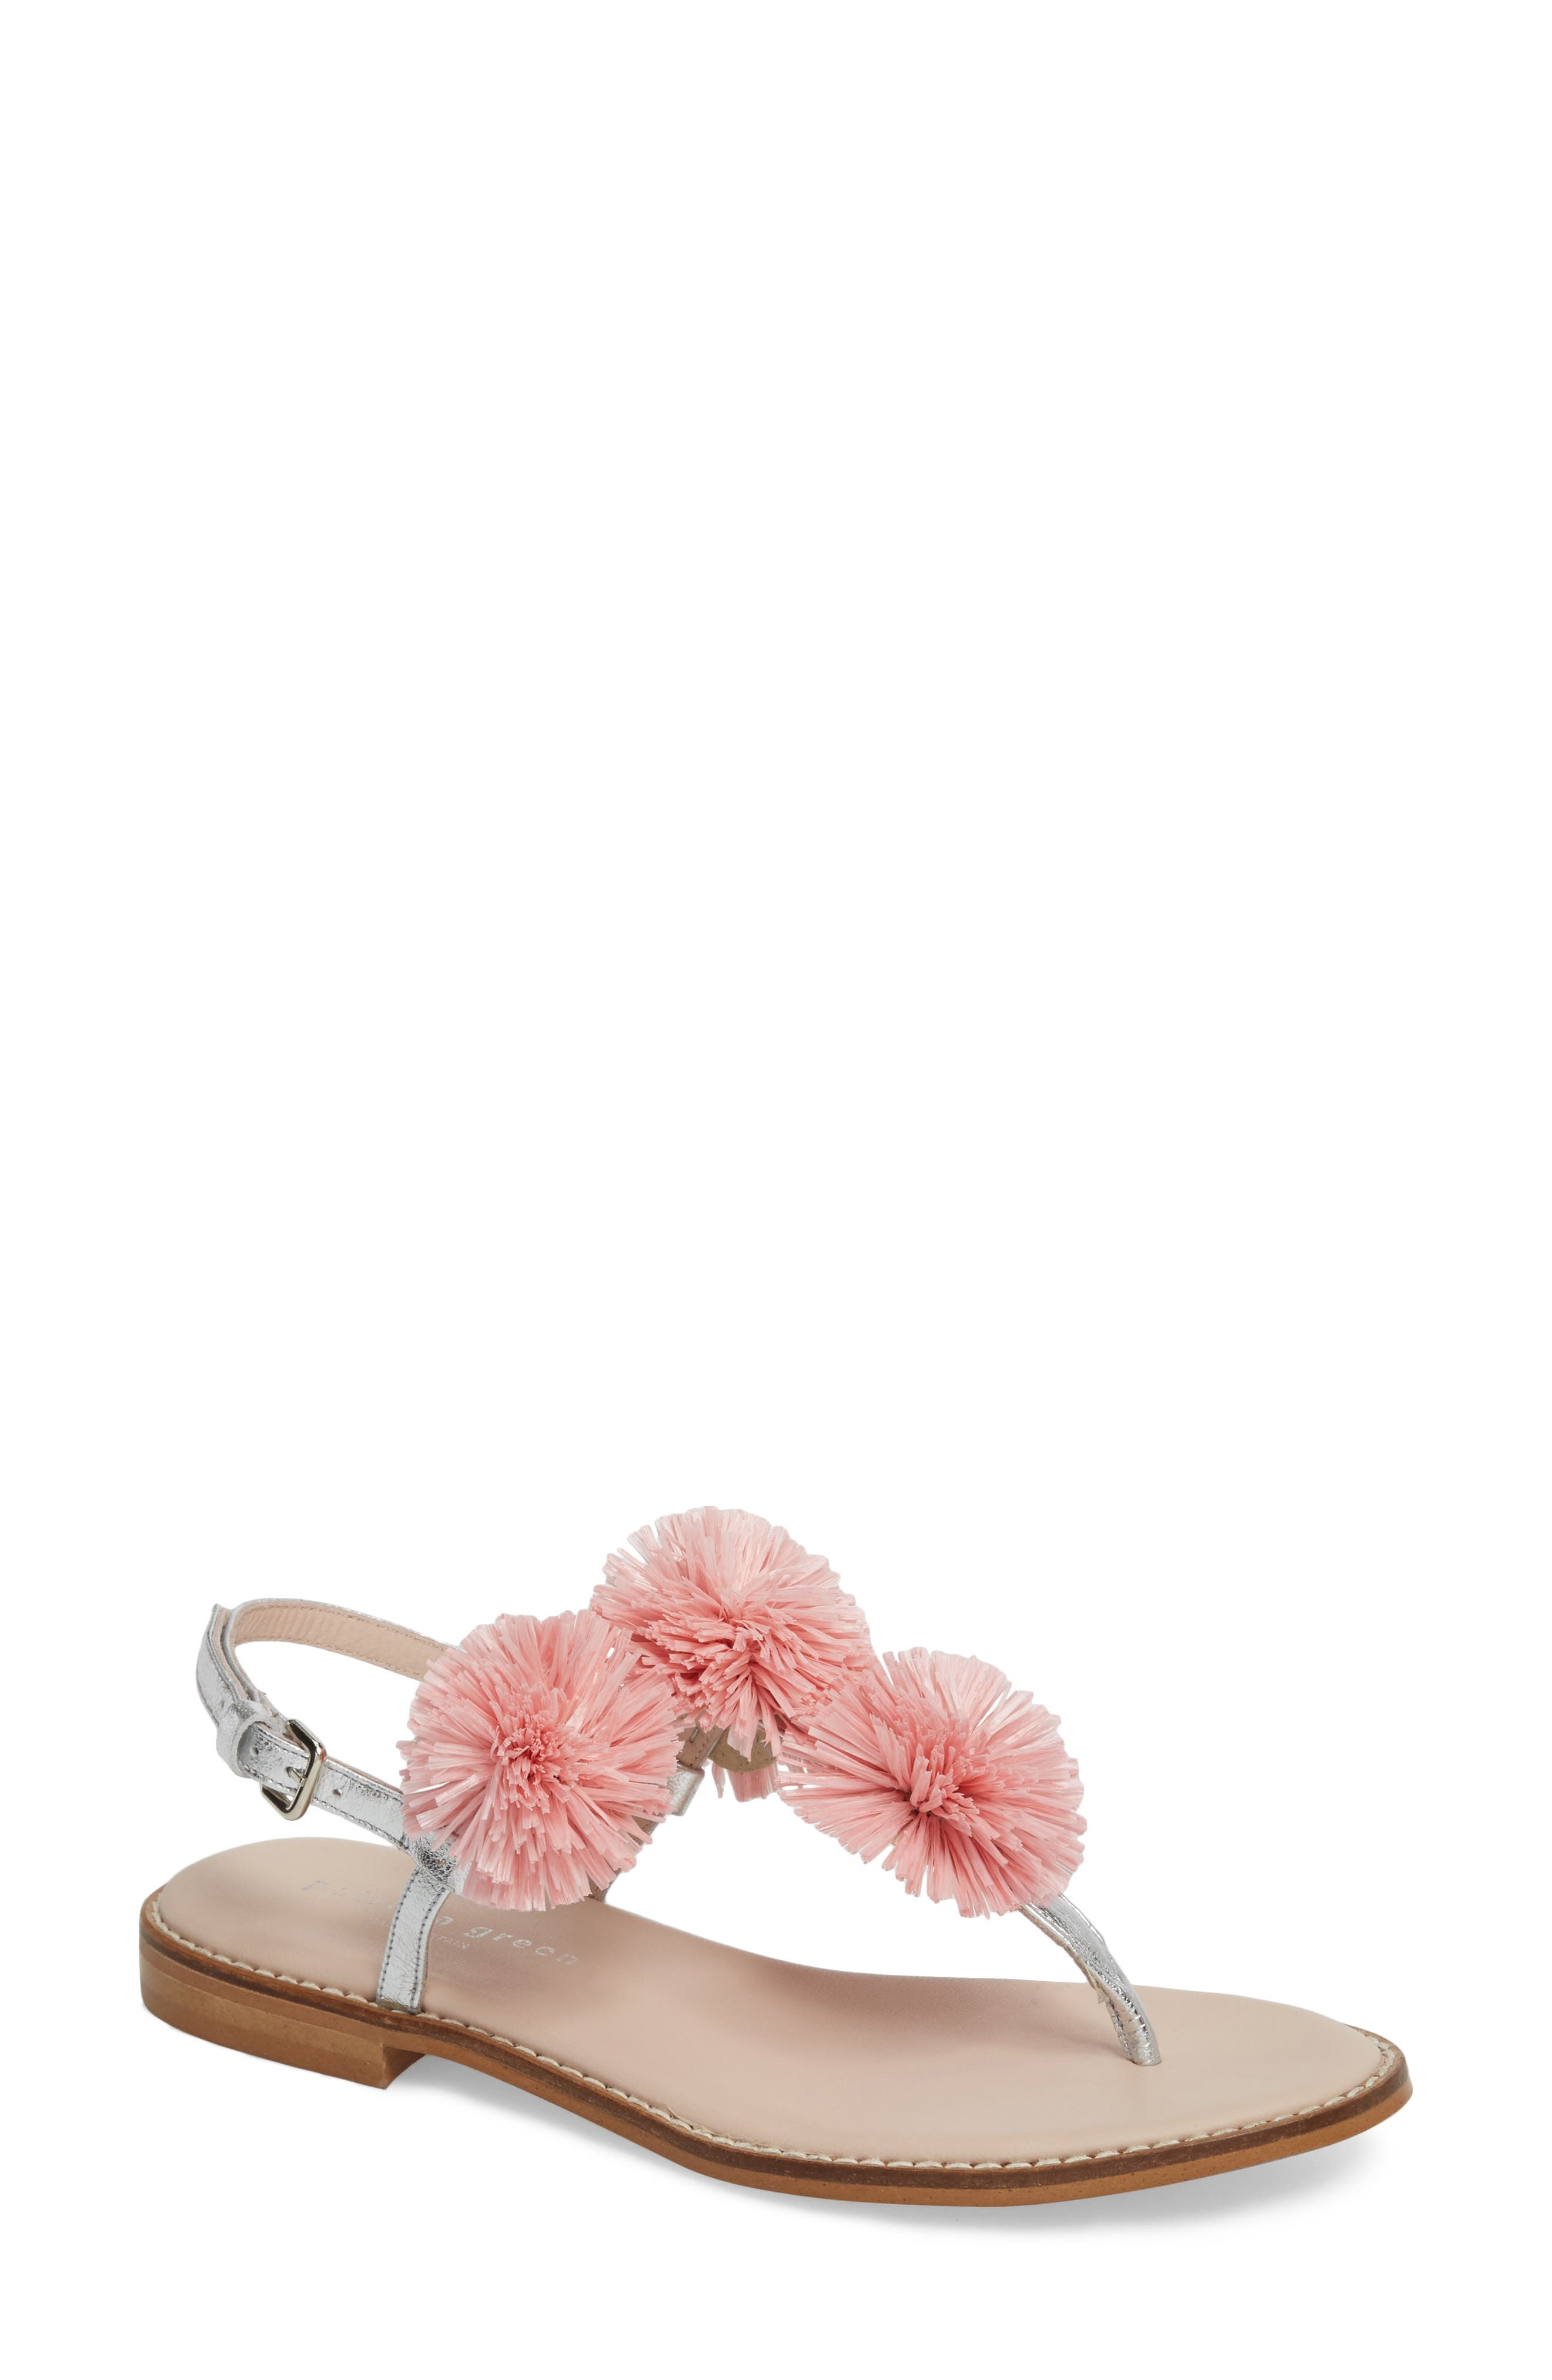 Pompom Thong Sandal,                         Main,                         color, PINK LEATHER